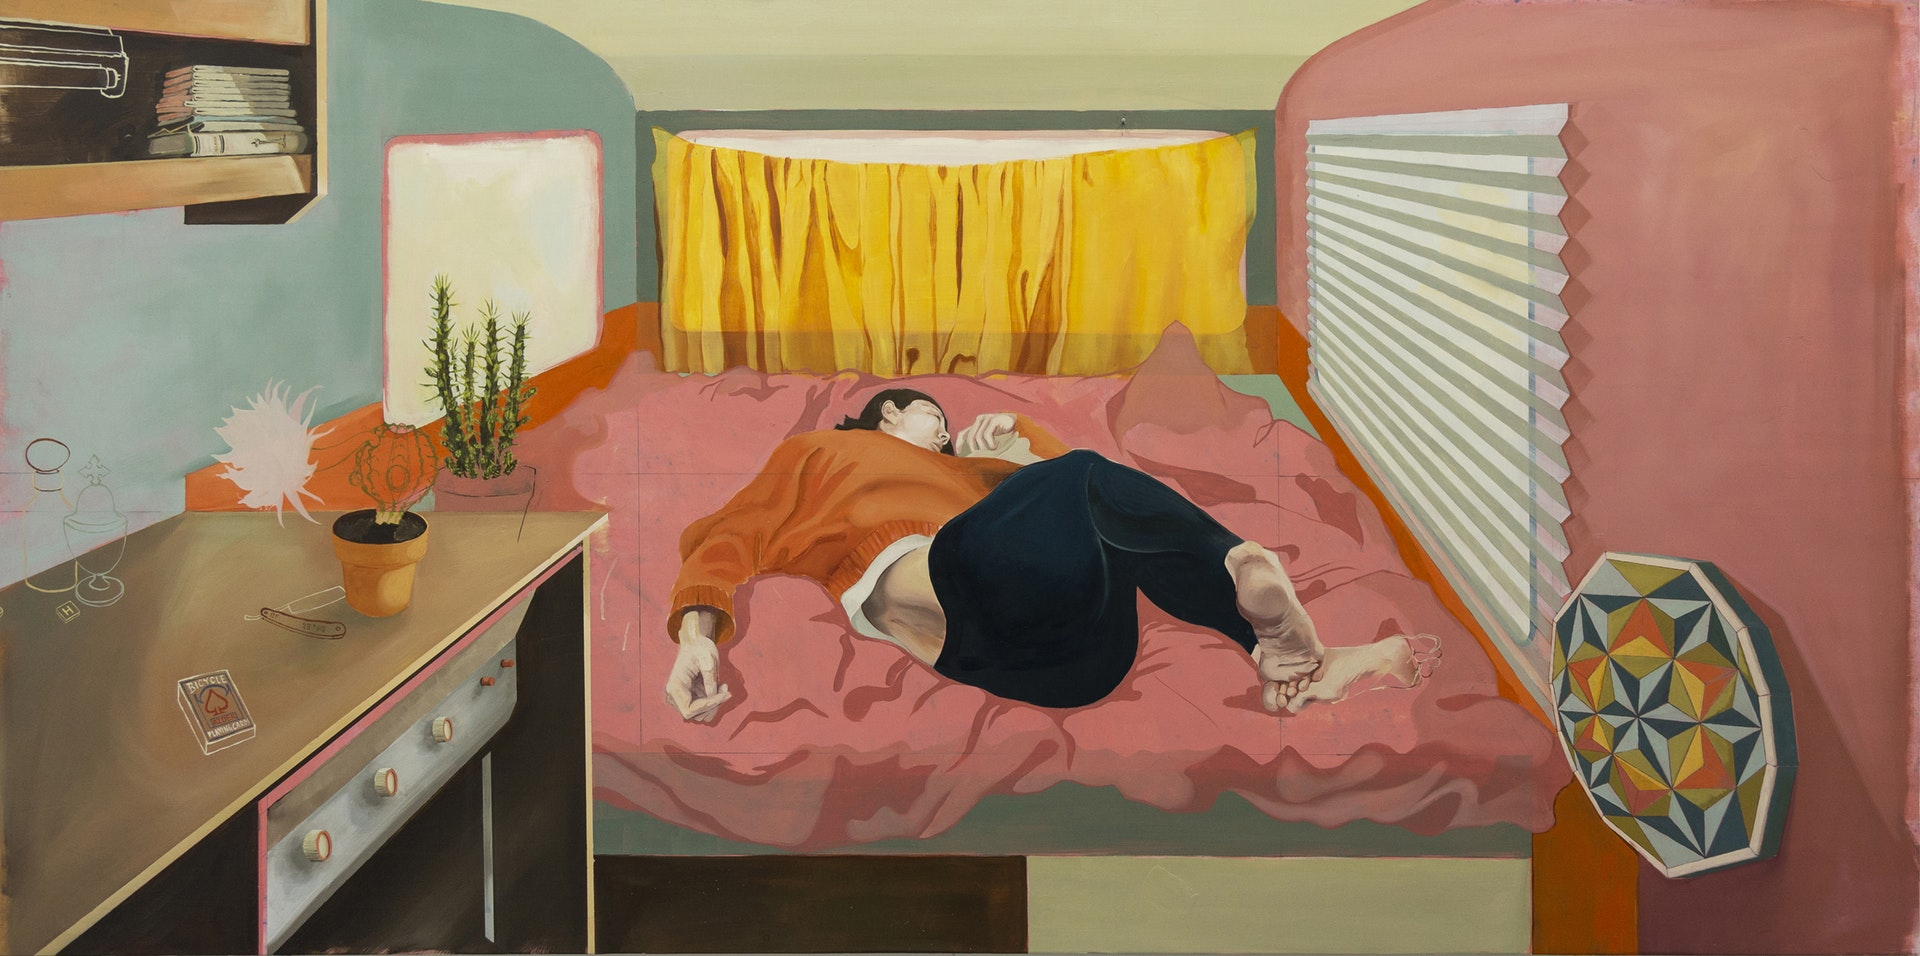 'Caravan II', Ruairi Fallon Mc Guigan, Oil Paint on Board, 1220 x 2440 x 3 cm